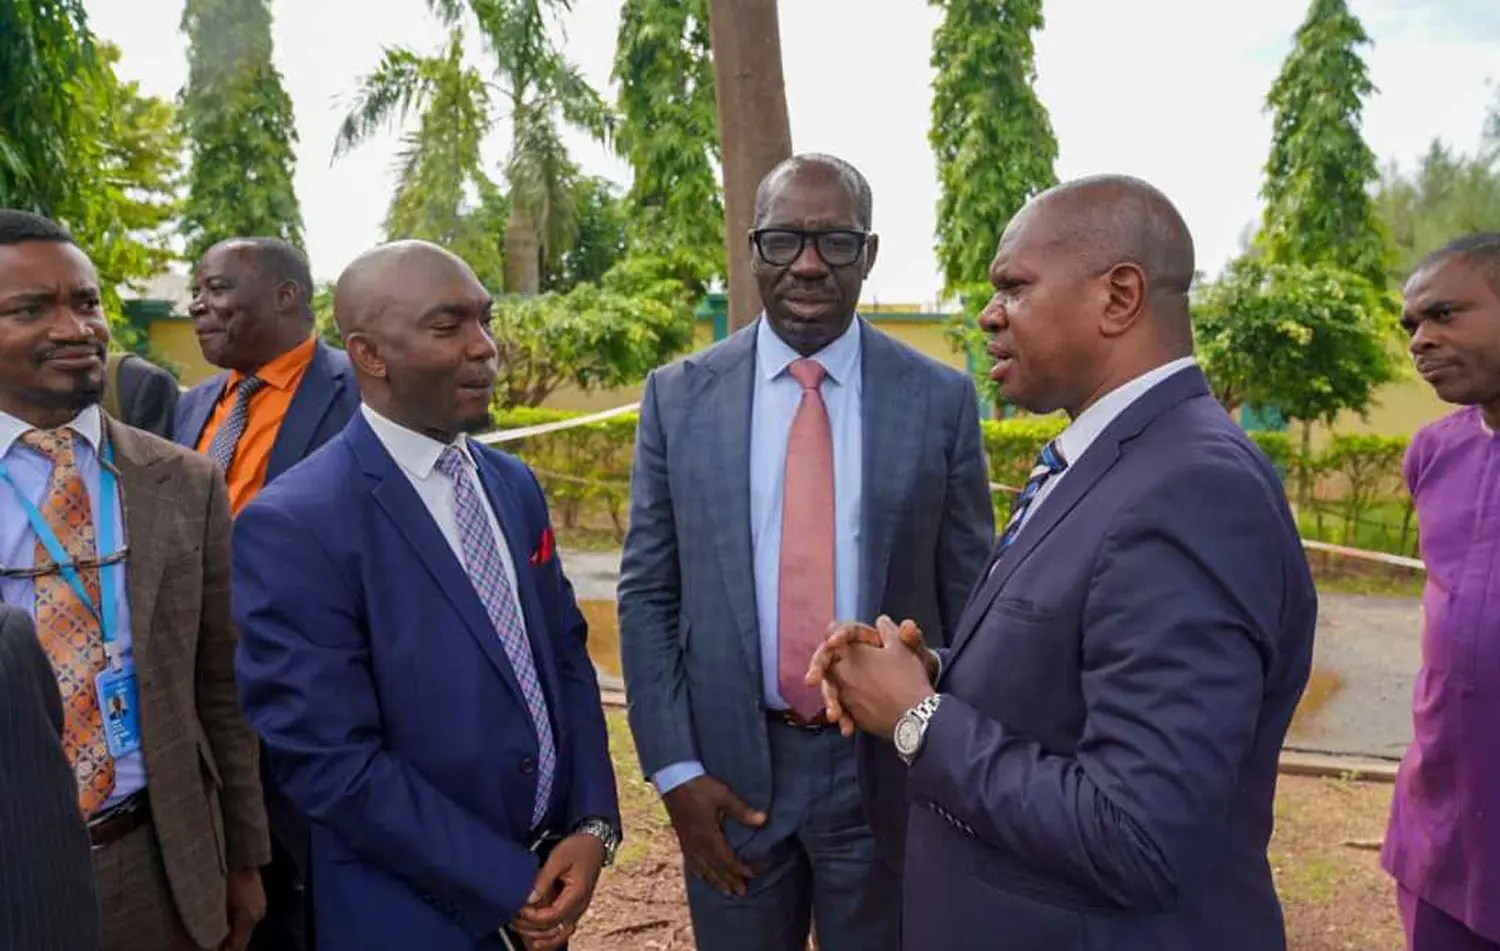 UNIDO picks Edo as leading state for industrial devt. Partnership - Vanguard